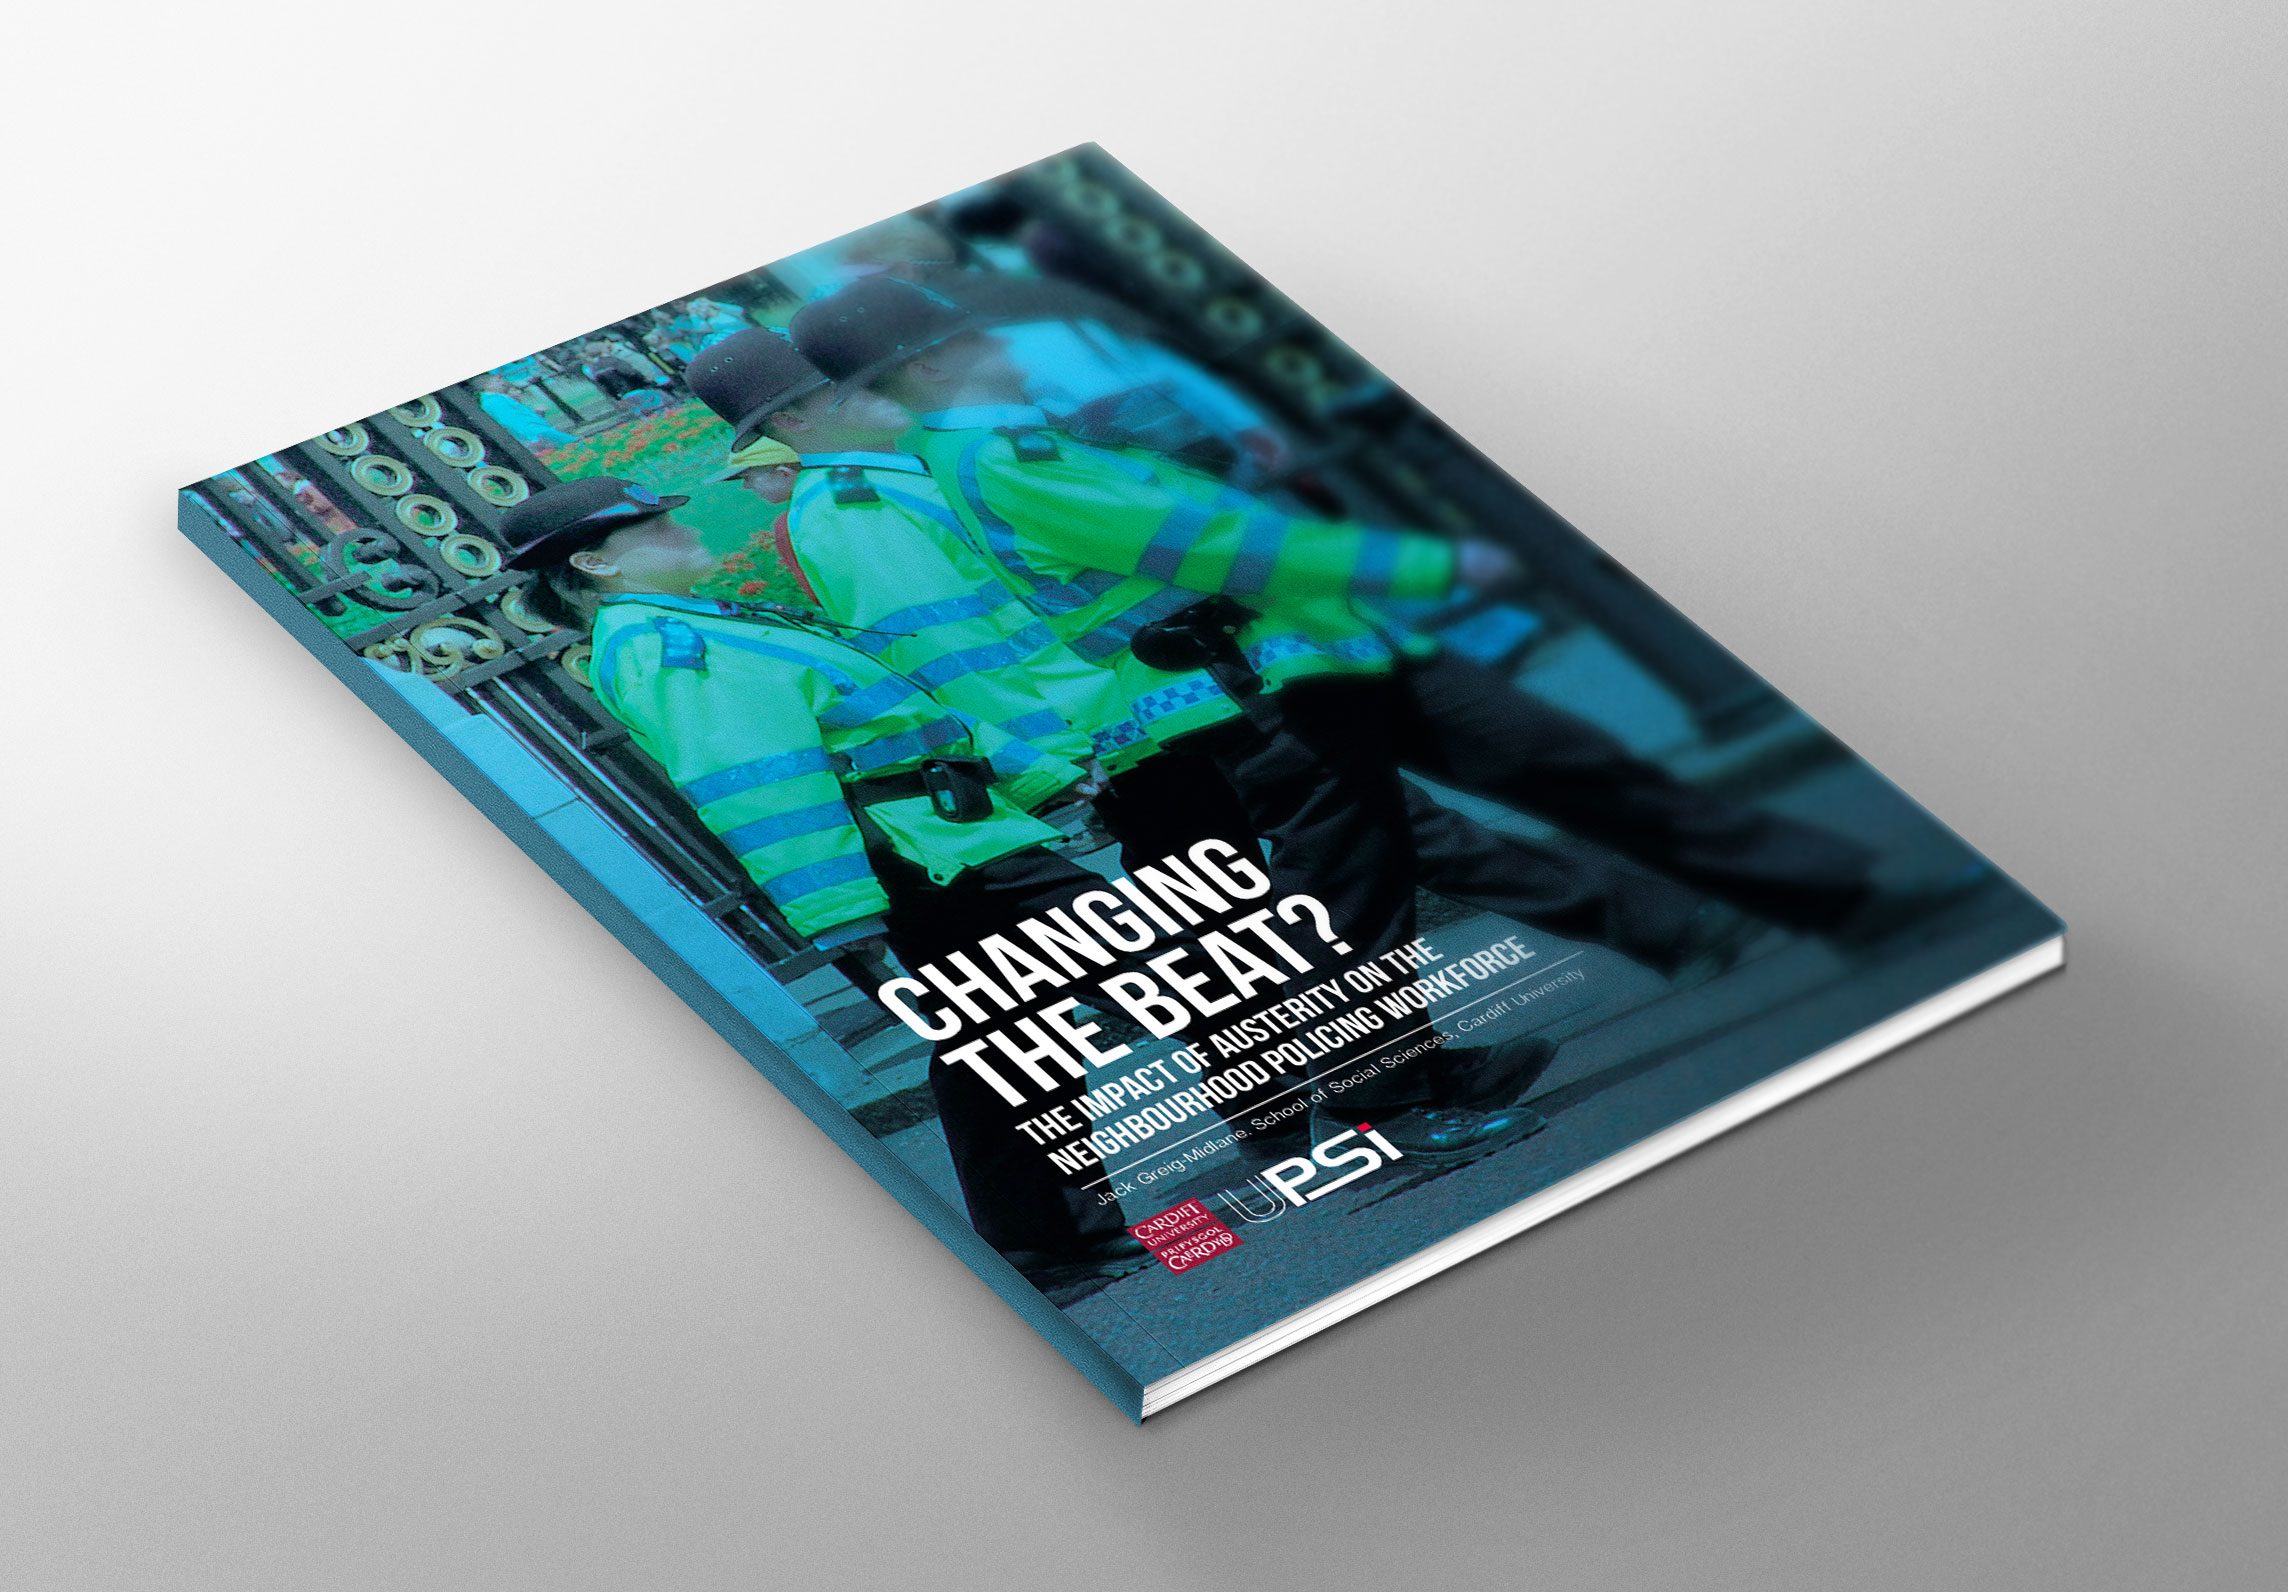 Changing-The-Beat-cover-mockup.jpg